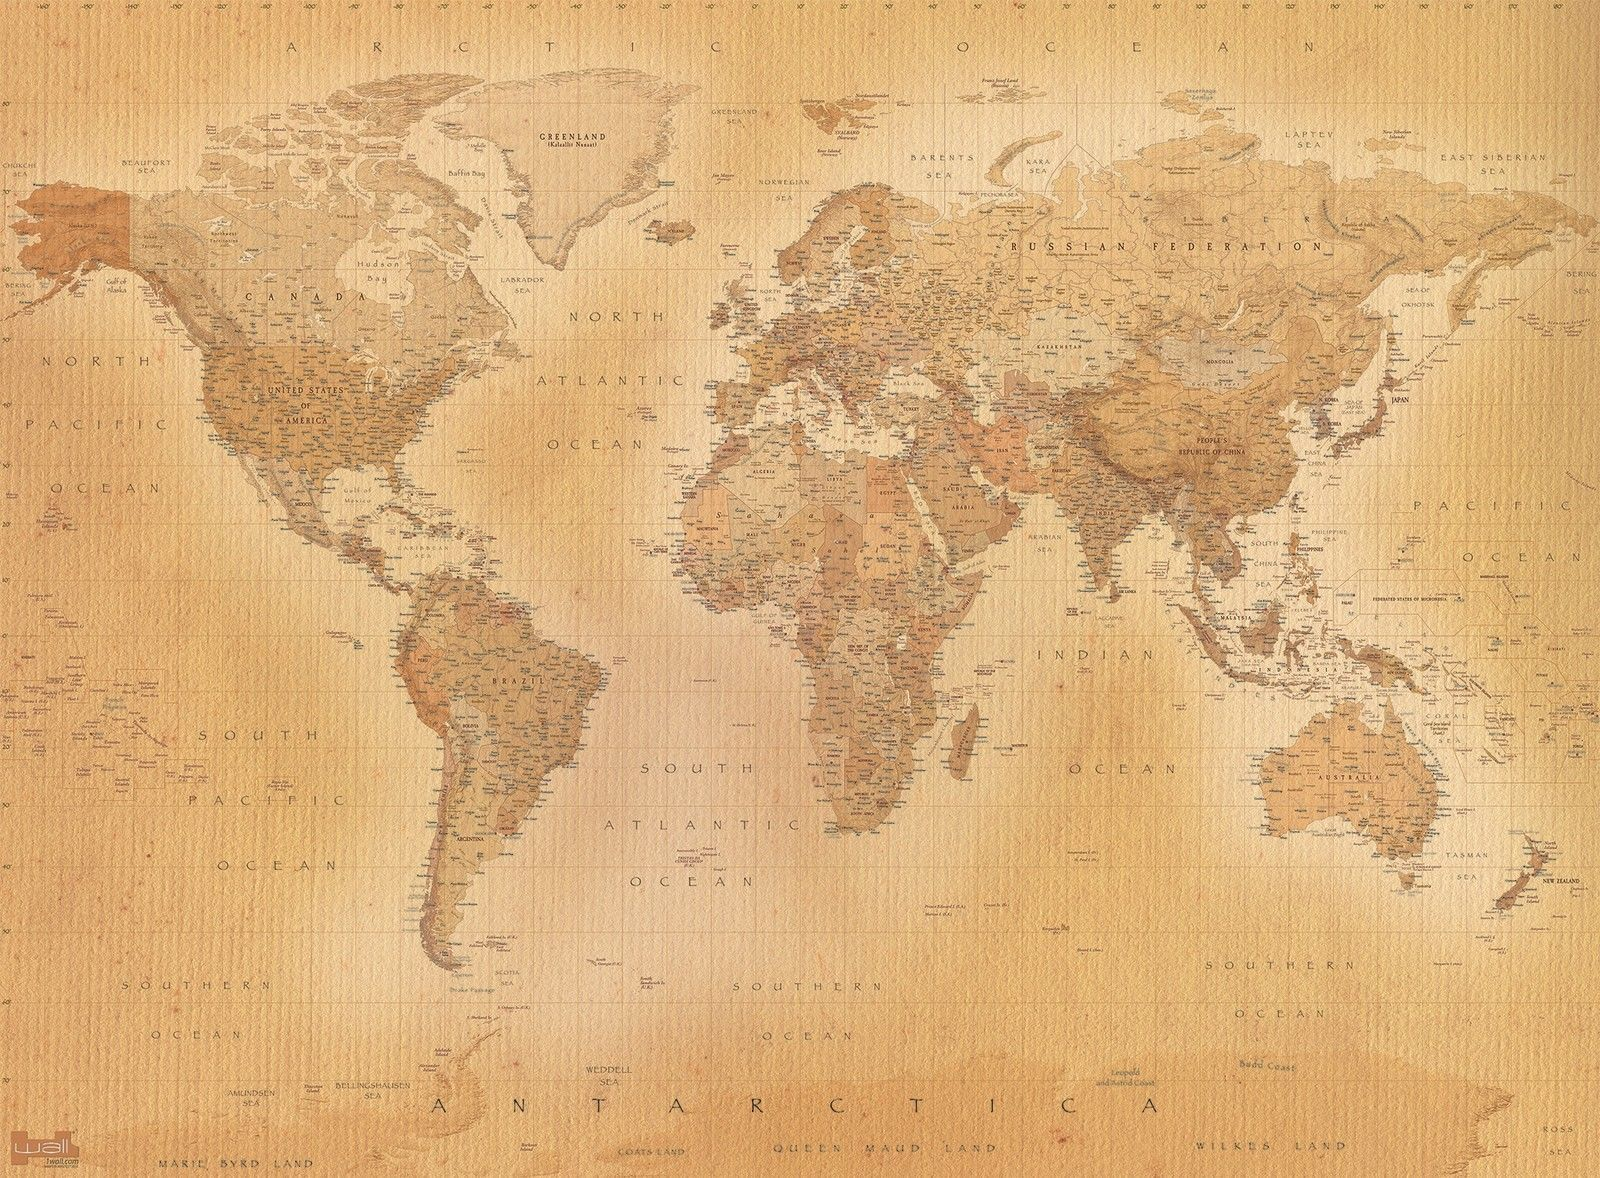 Old style vintage world map wallpaper wall mural 232m x 315m new old style vintage world map wallpaper wall mural 232m x 315m new free p gumiabroncs Images